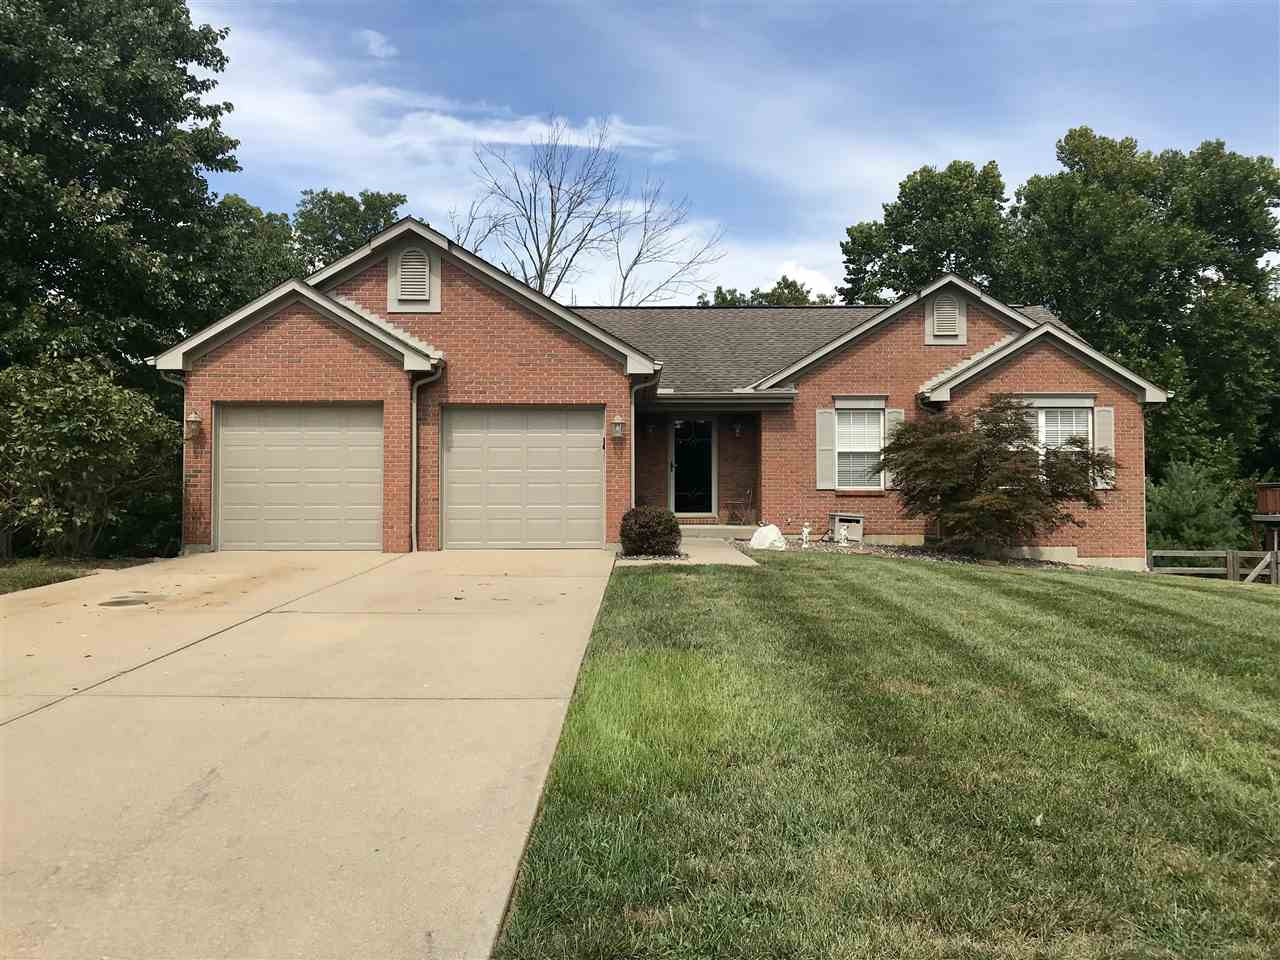 Photo 1 for 10701 Blue Spruce Ln Independence, KY 41051